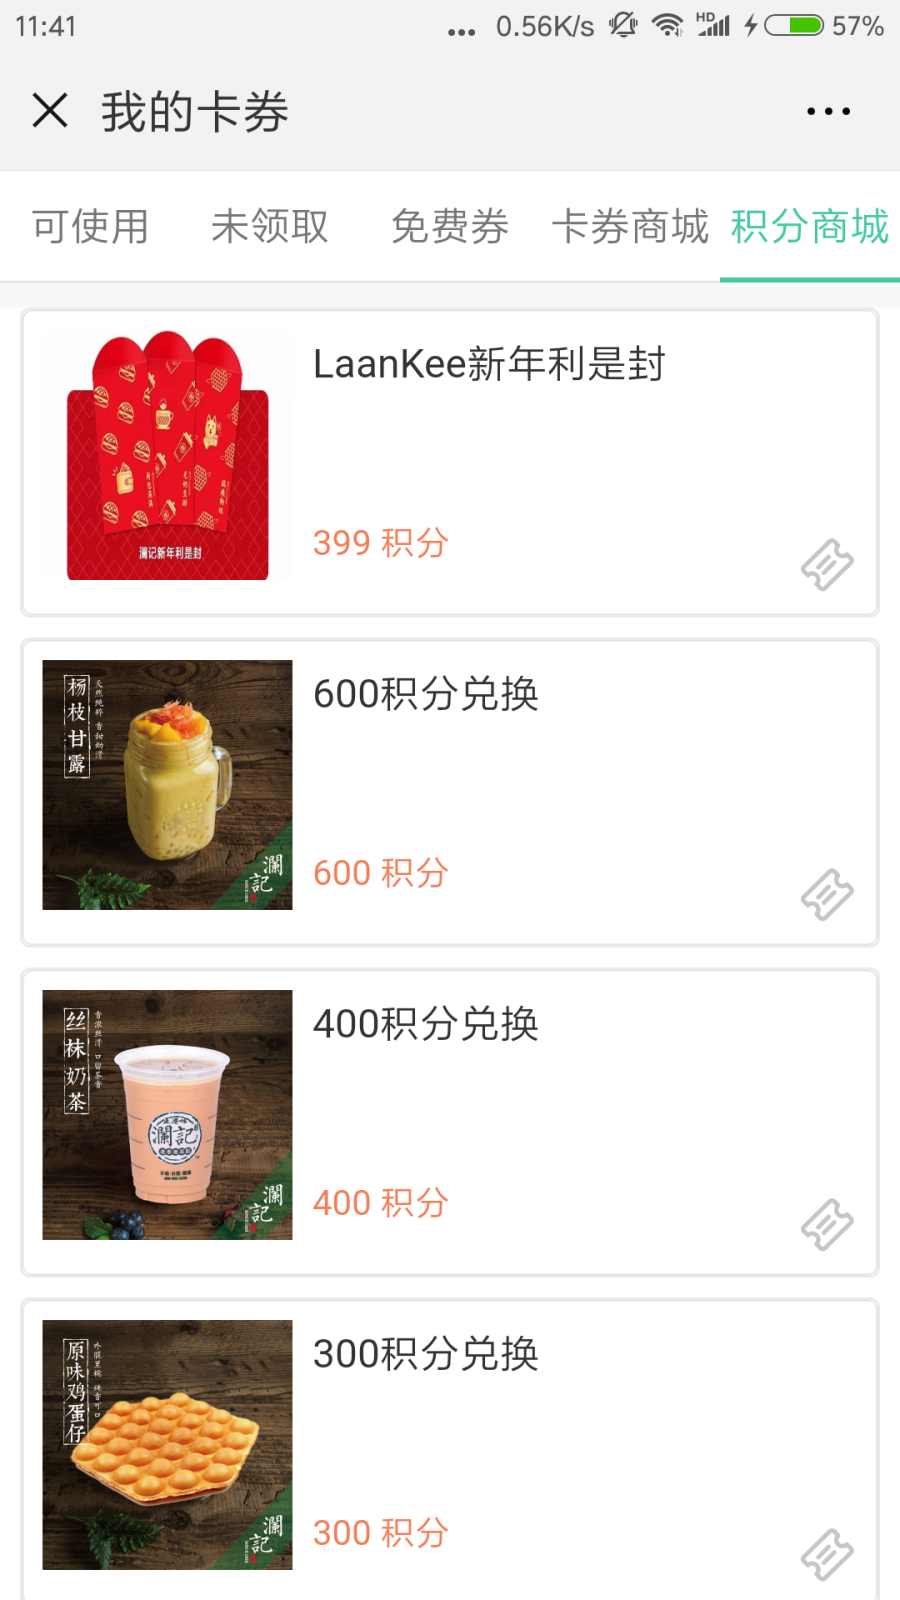 Screenshot_2018-08-27-11-41-14-273_com.tencent.mm.png